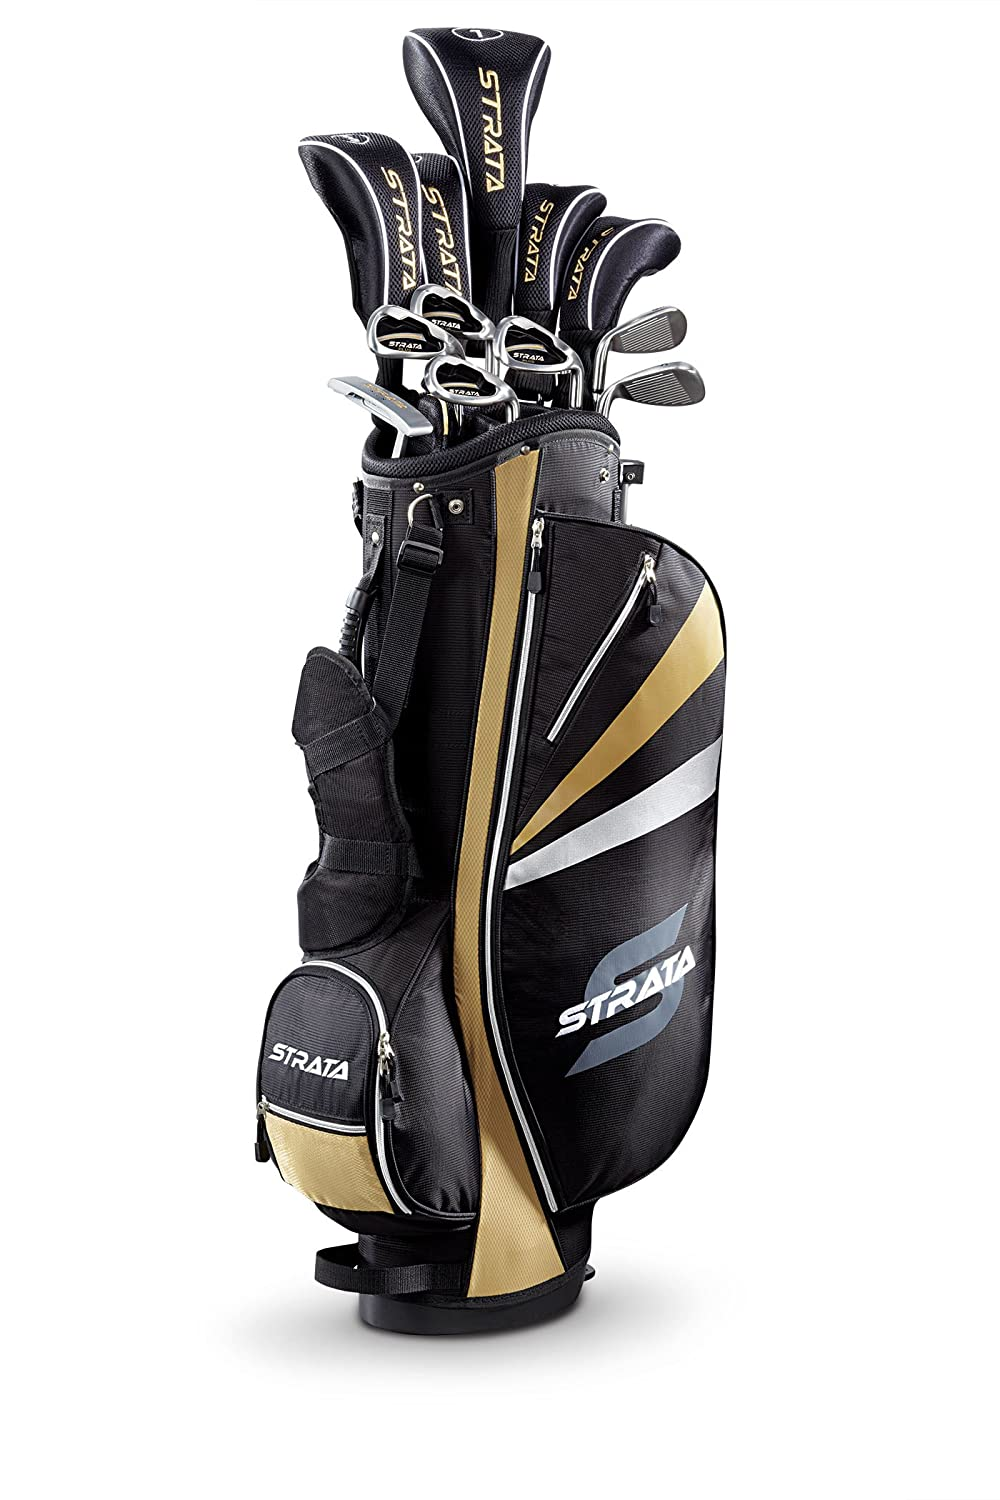 Bộ gậy Golf Callaway Strata Plus Mens Complete Golf Set with Bag, 18-Piece